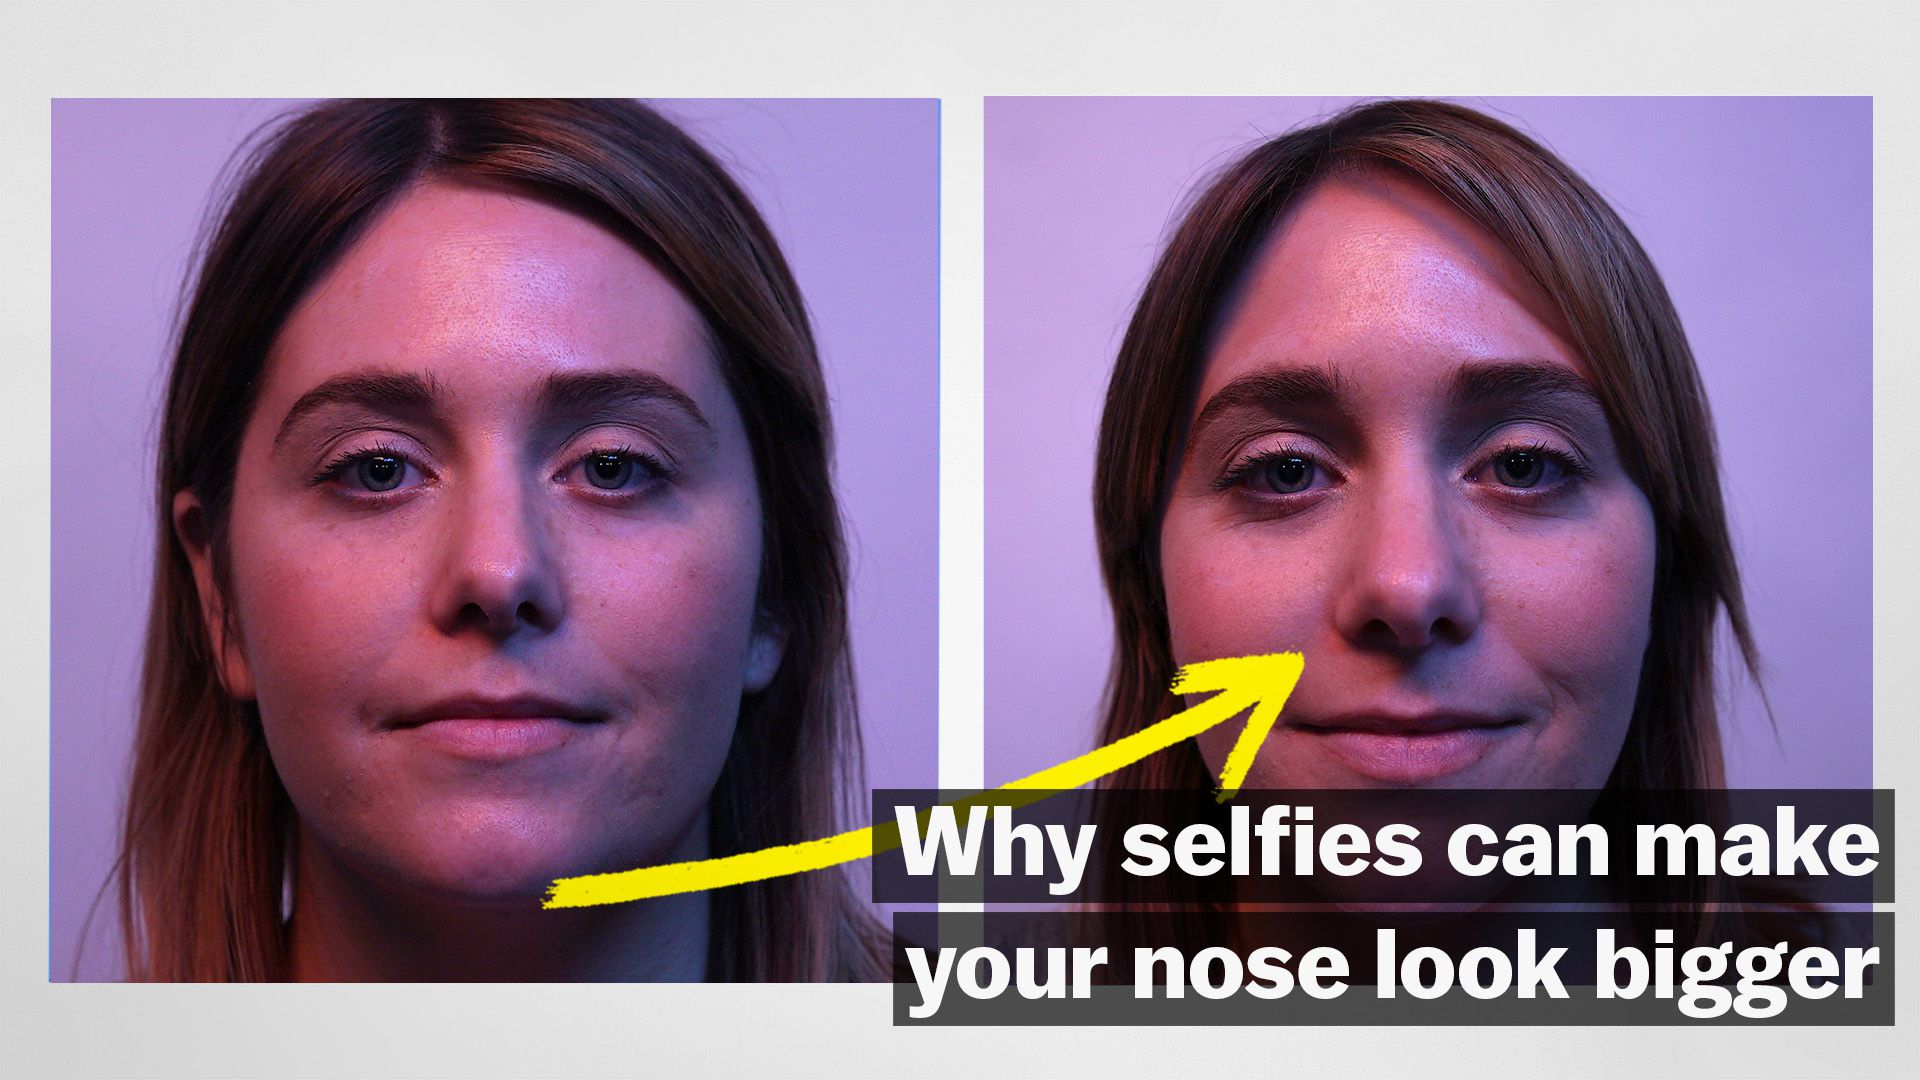 Selfie Face Distortion Is Driving People To Get Nose Jobs Vox